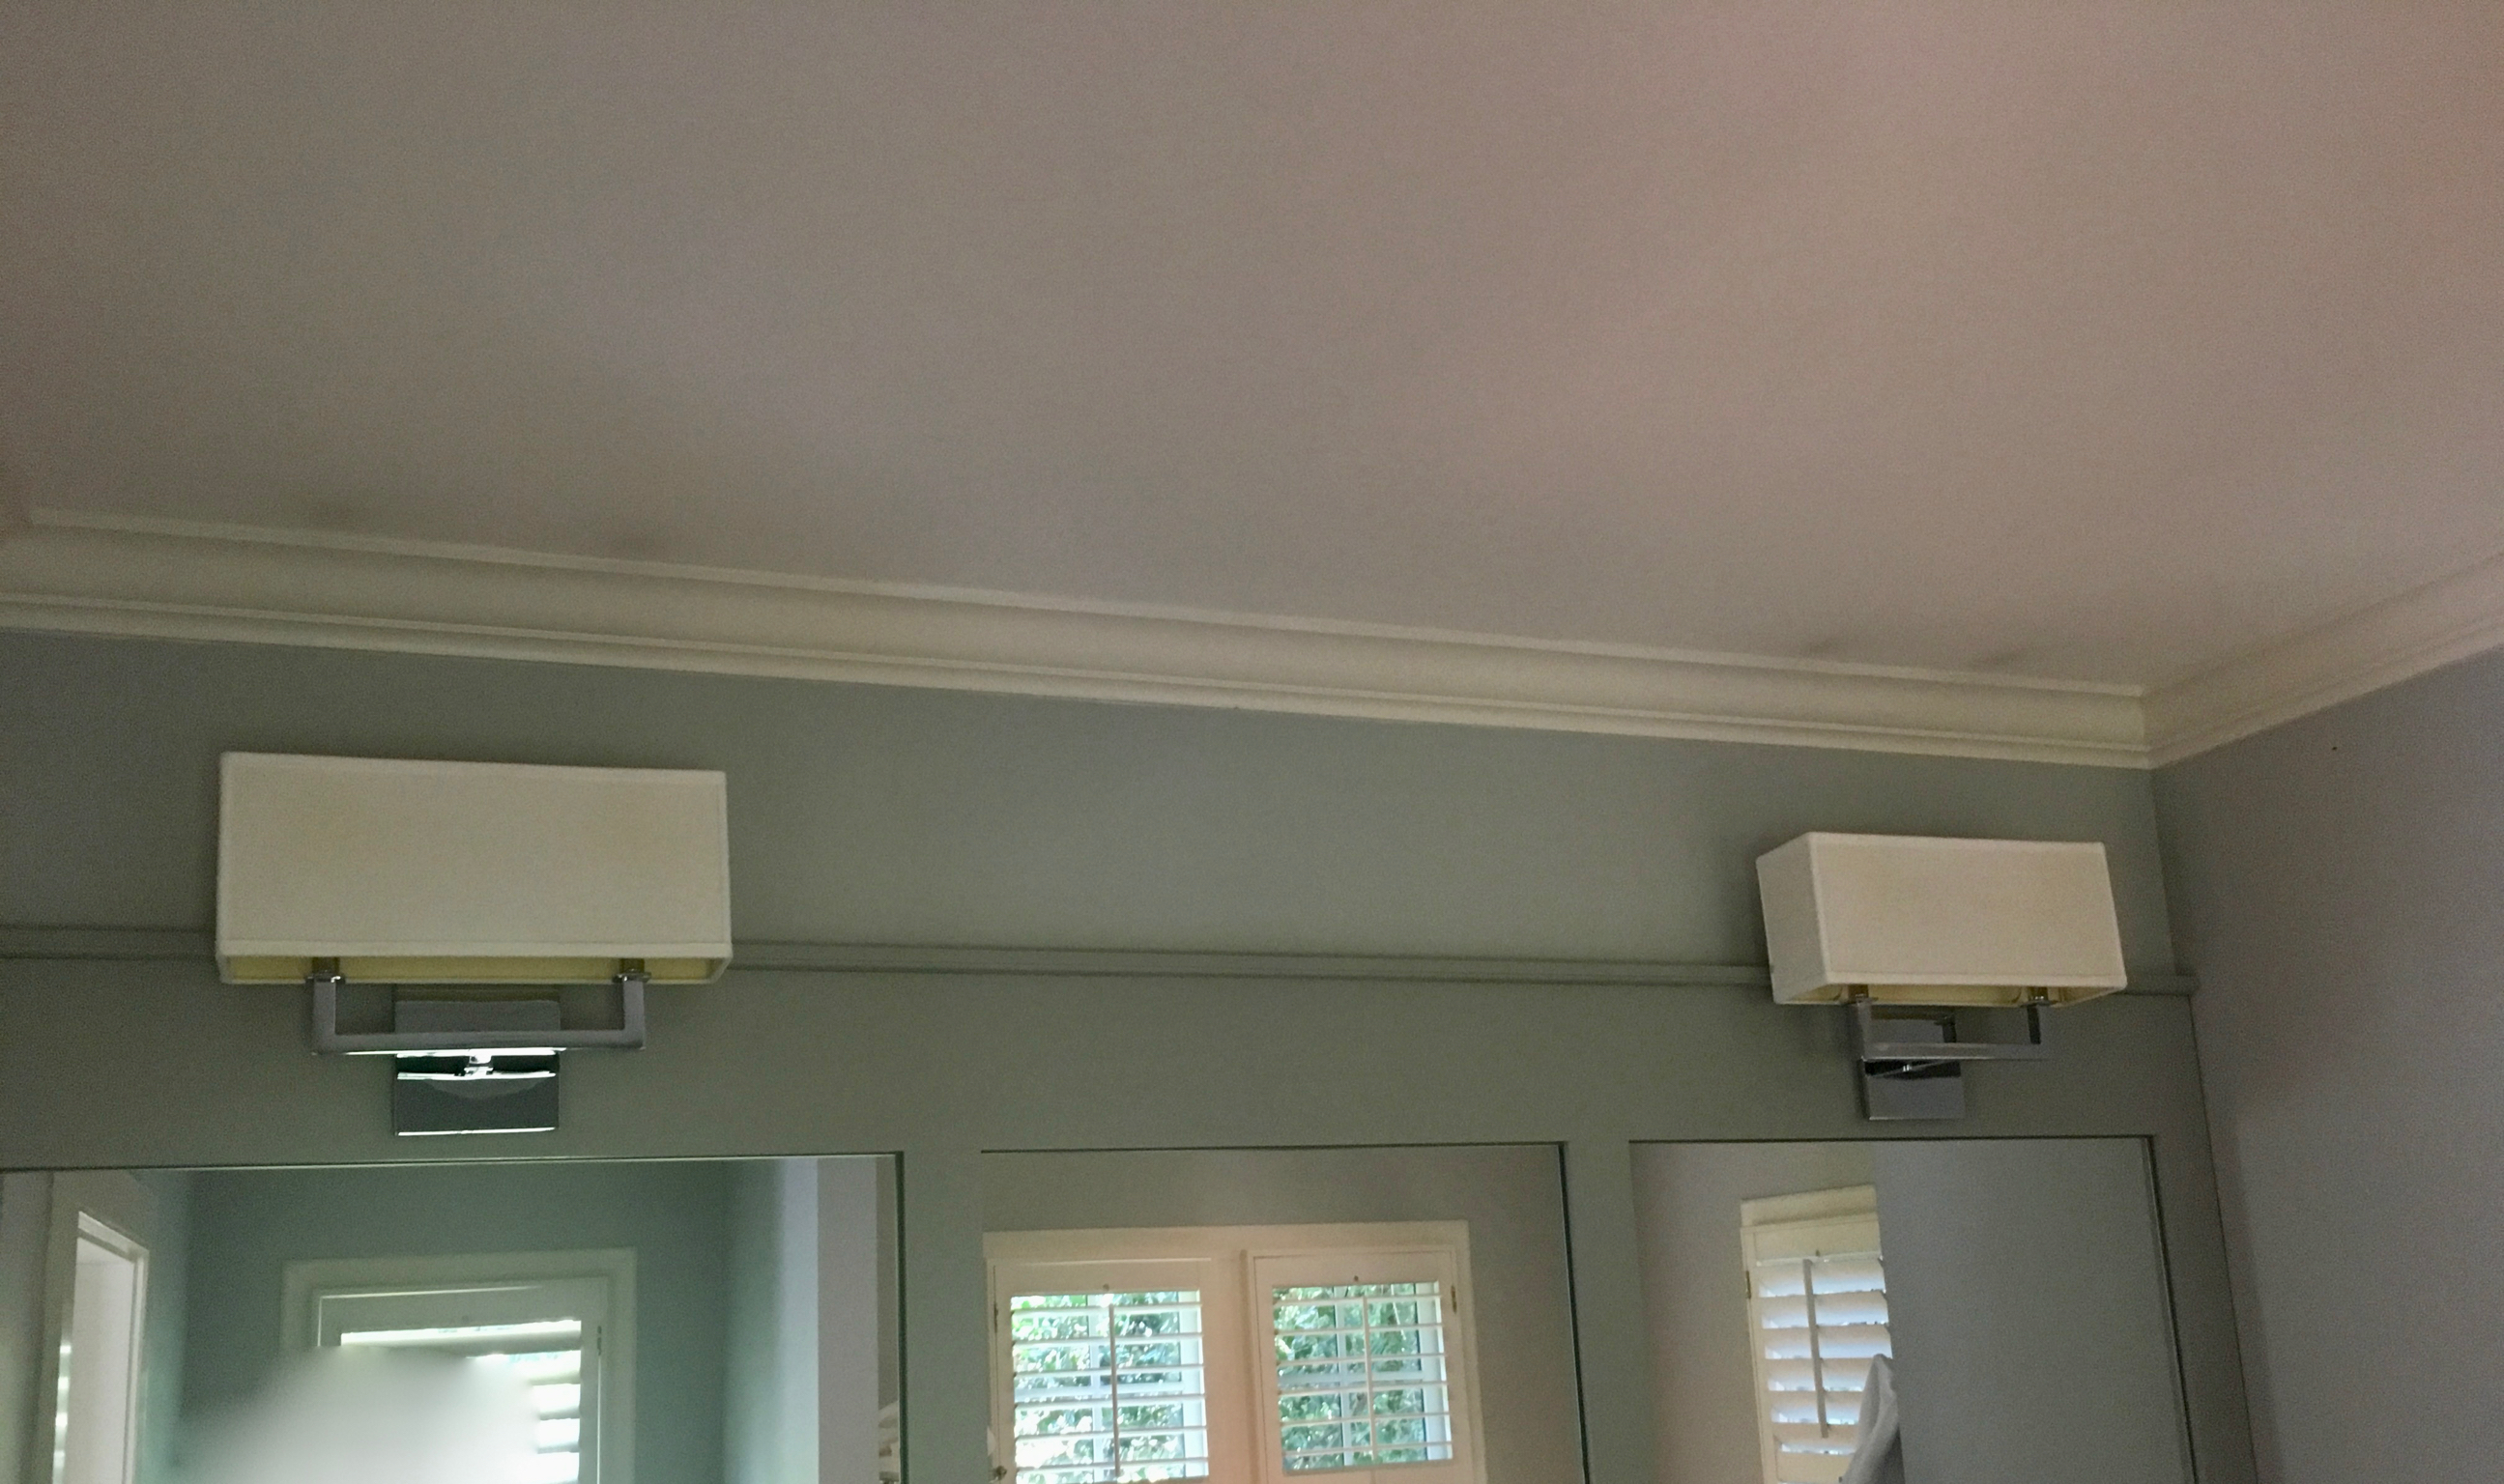 Pair of Light Fixtures